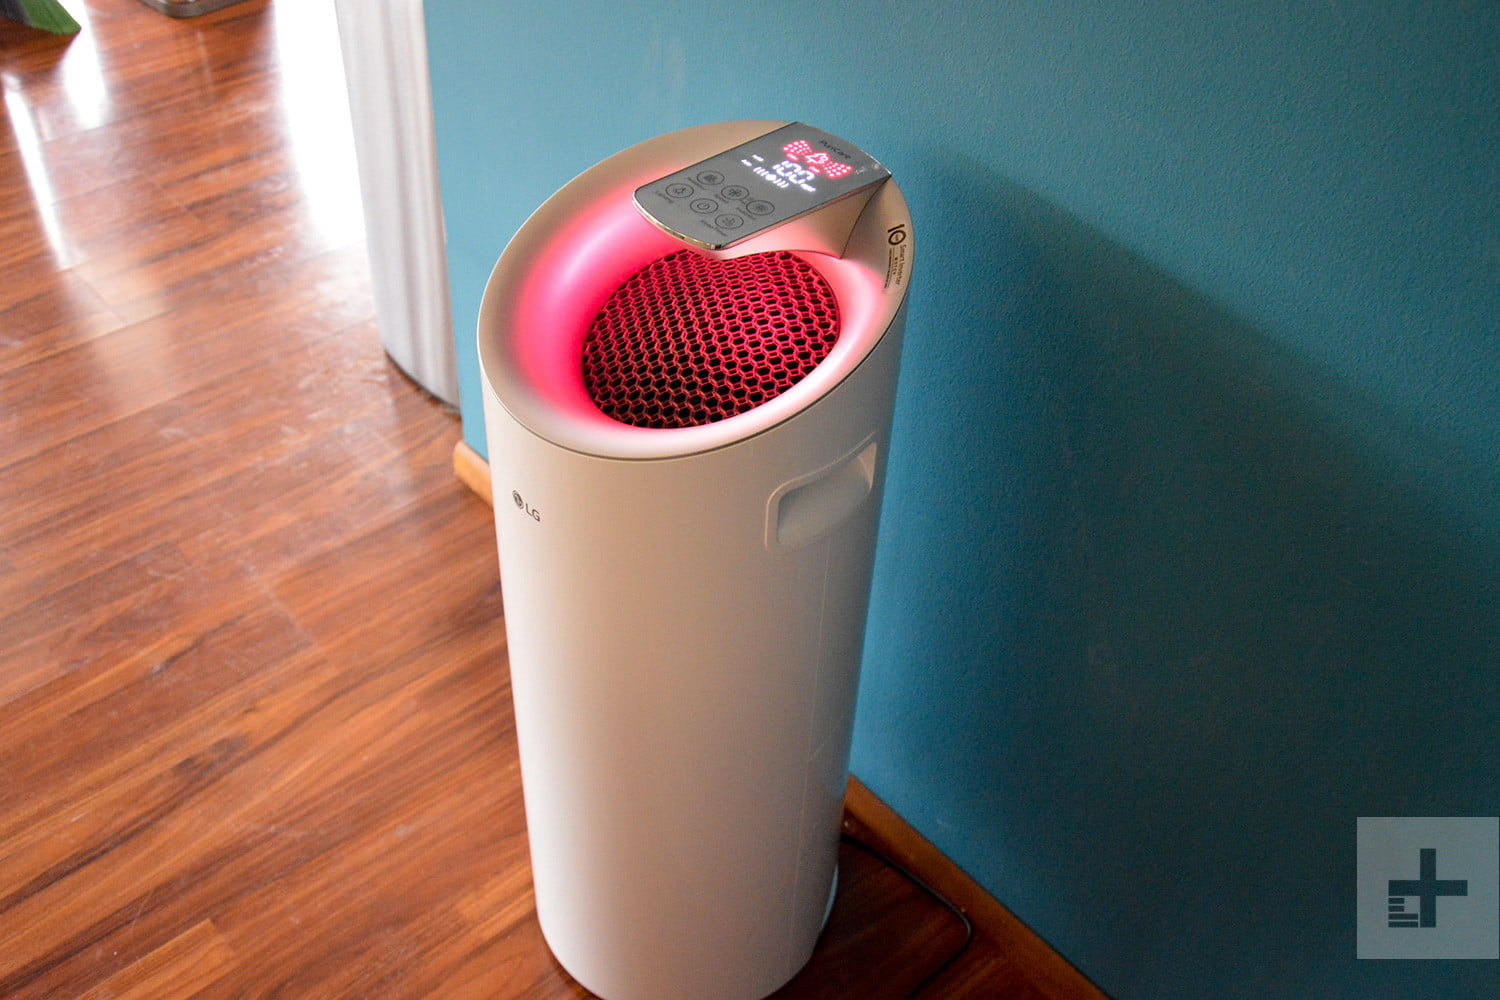 LG Puricare air purifier review pink body angle